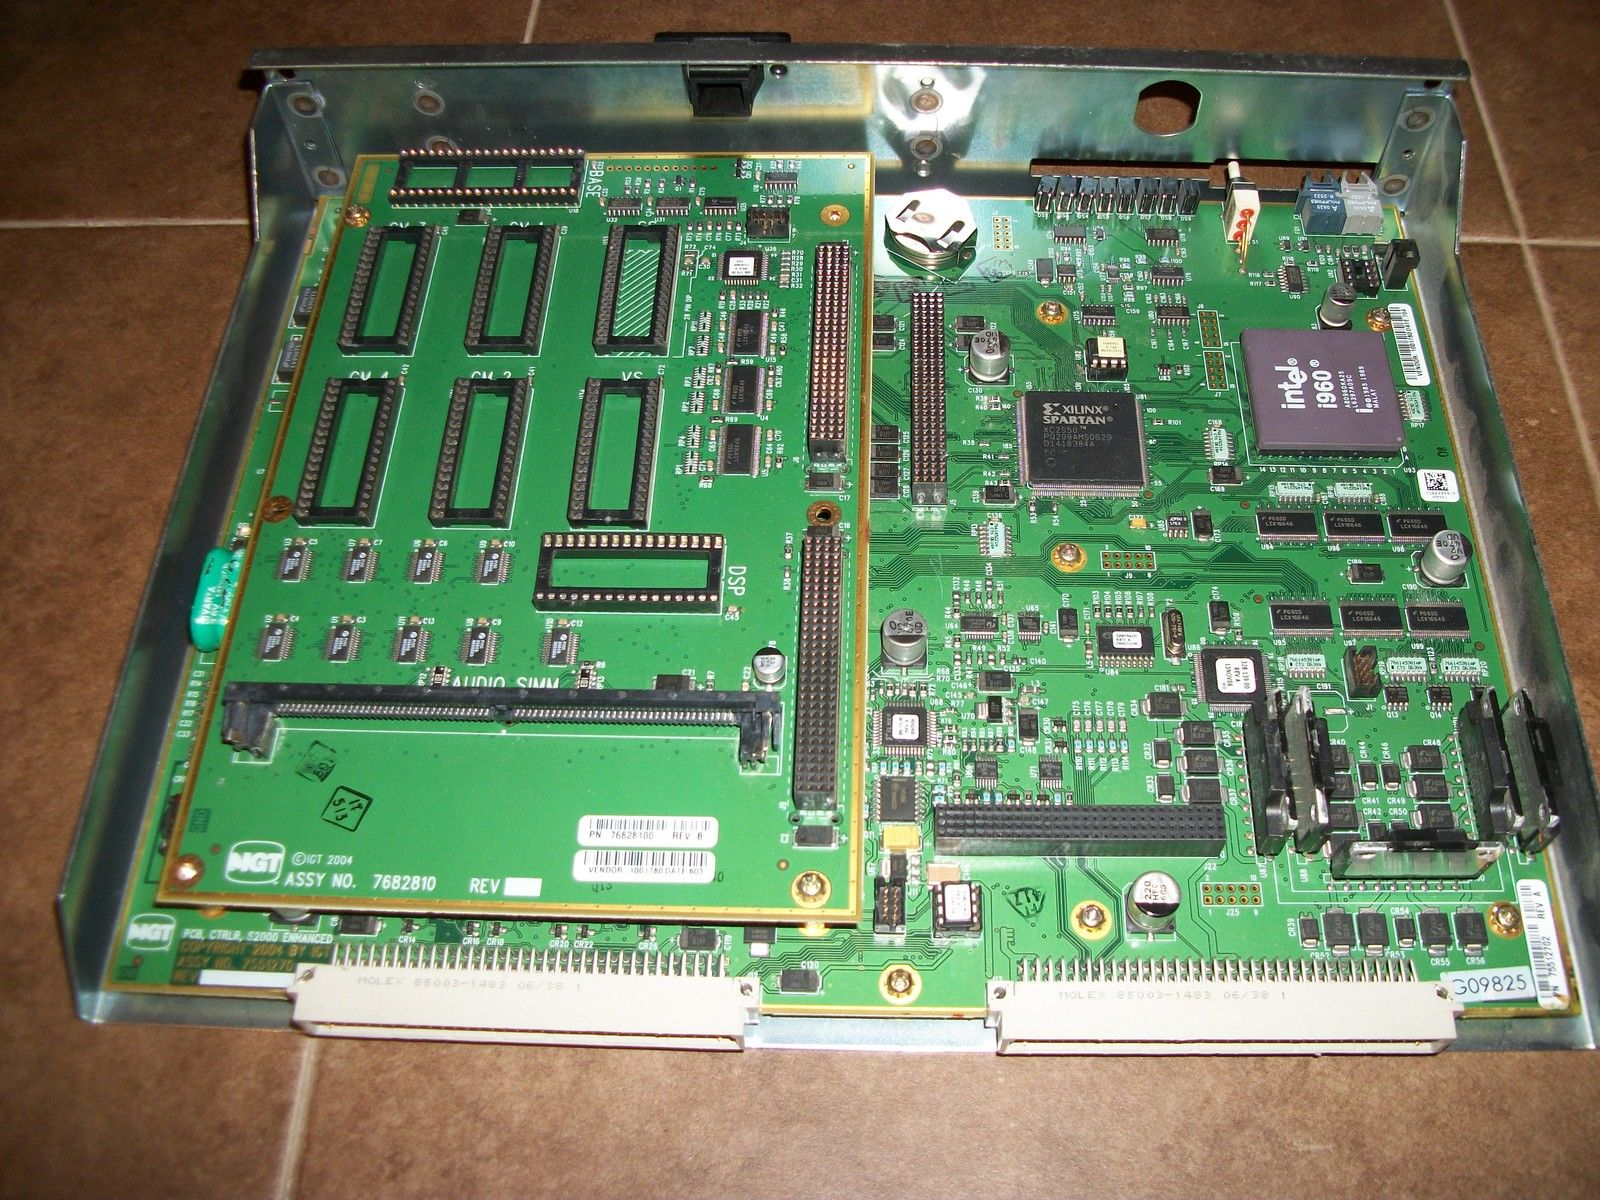 IGT slot machines, WMS slot machines, Williams Slot machines, Bally Slot Machines, Aristocrat slots, gaming machines, games, bill acceptors, williams, bally, IGT.